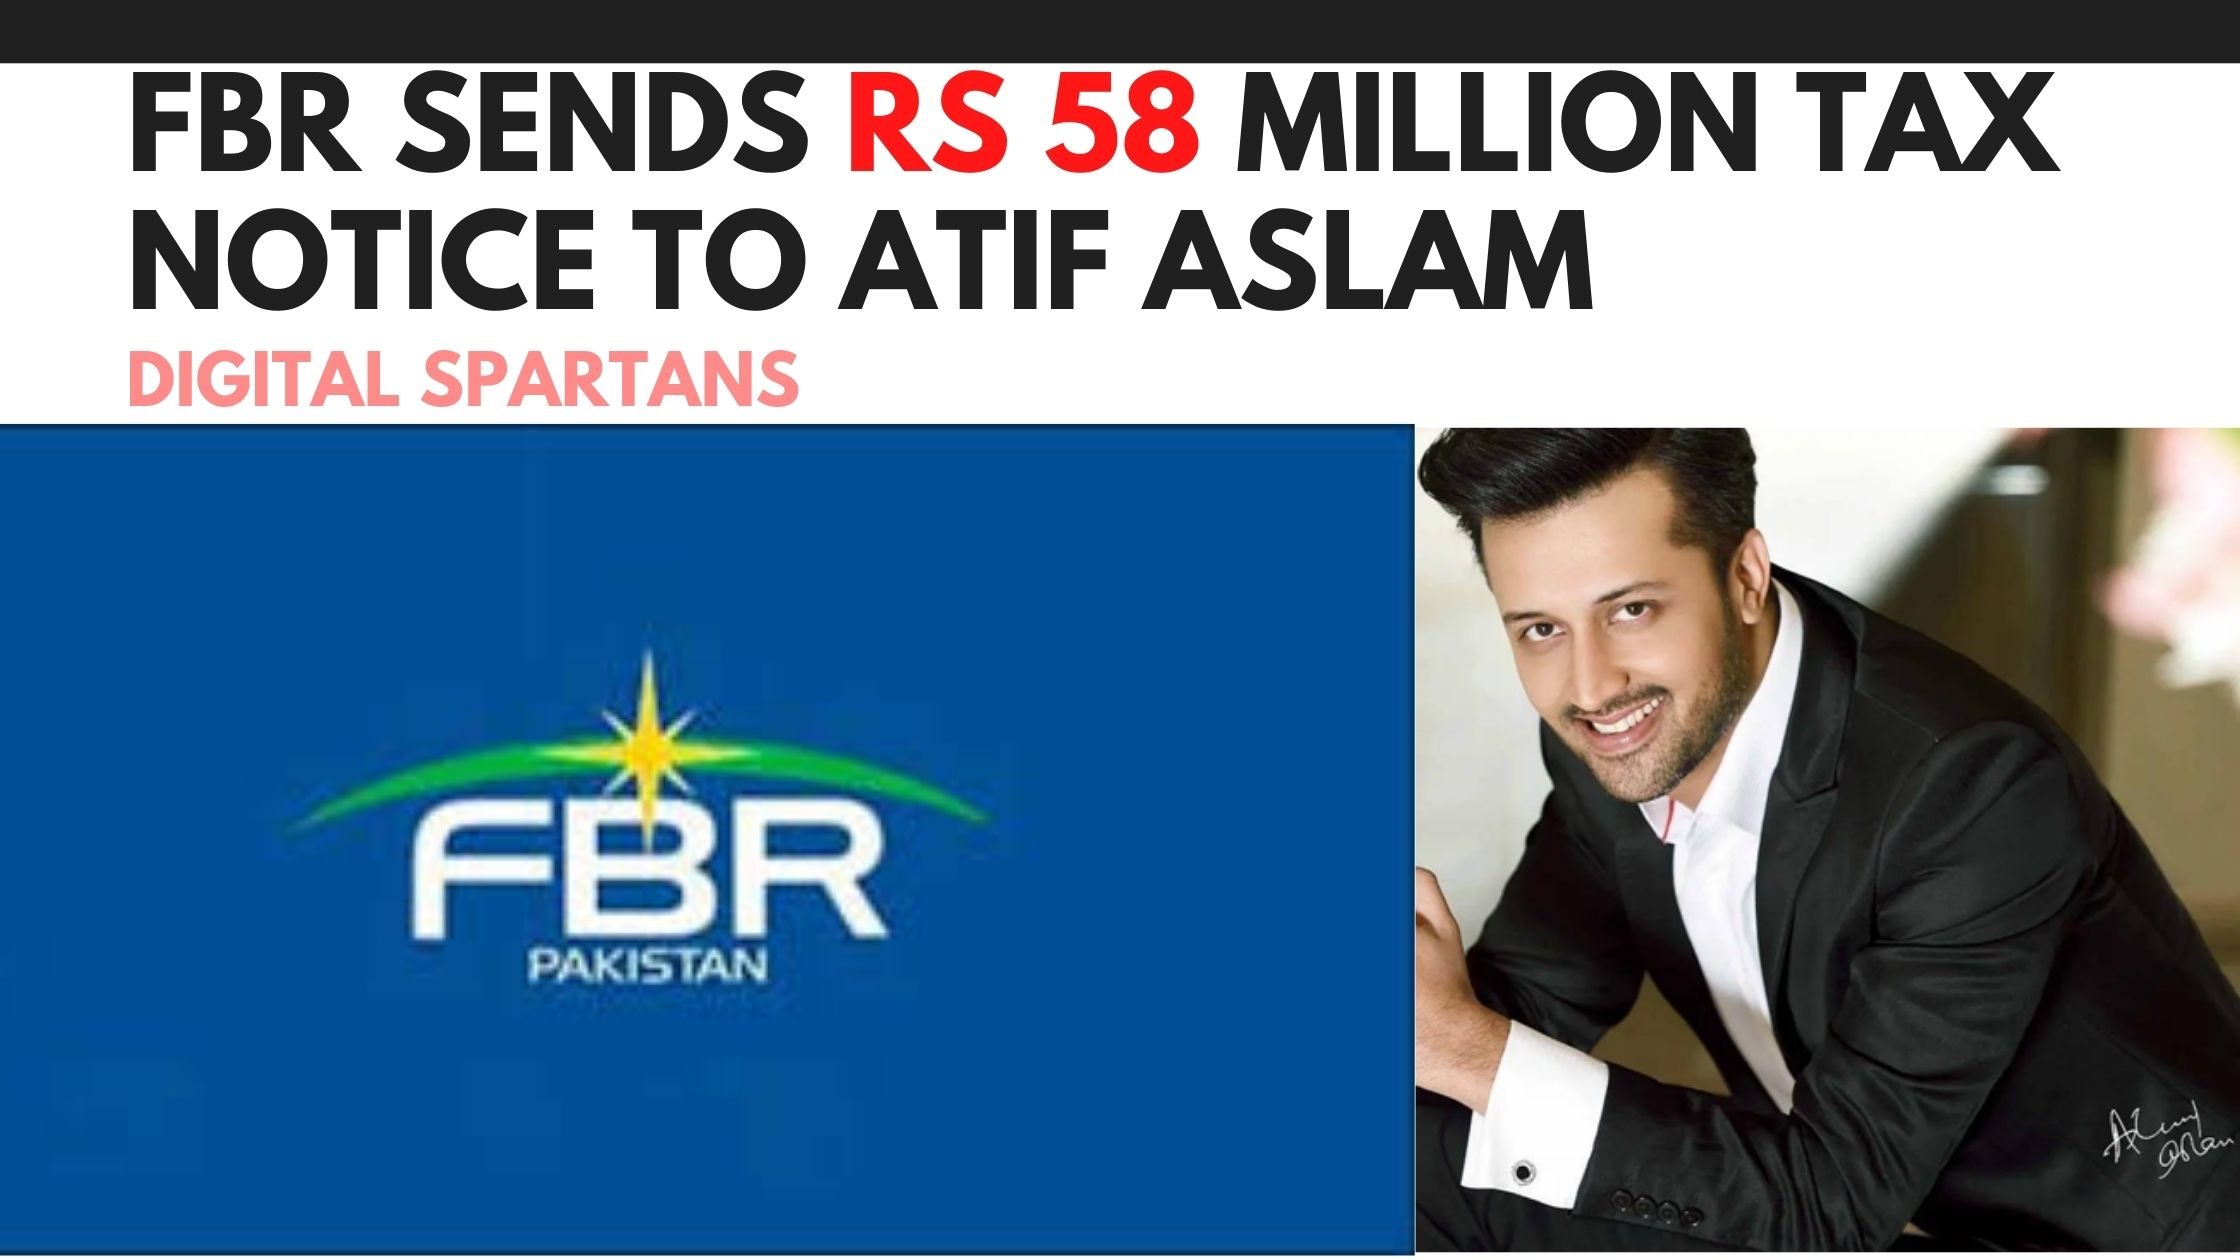 FBR Sends Rs 58 Million Tax Notice to Atif Aslam